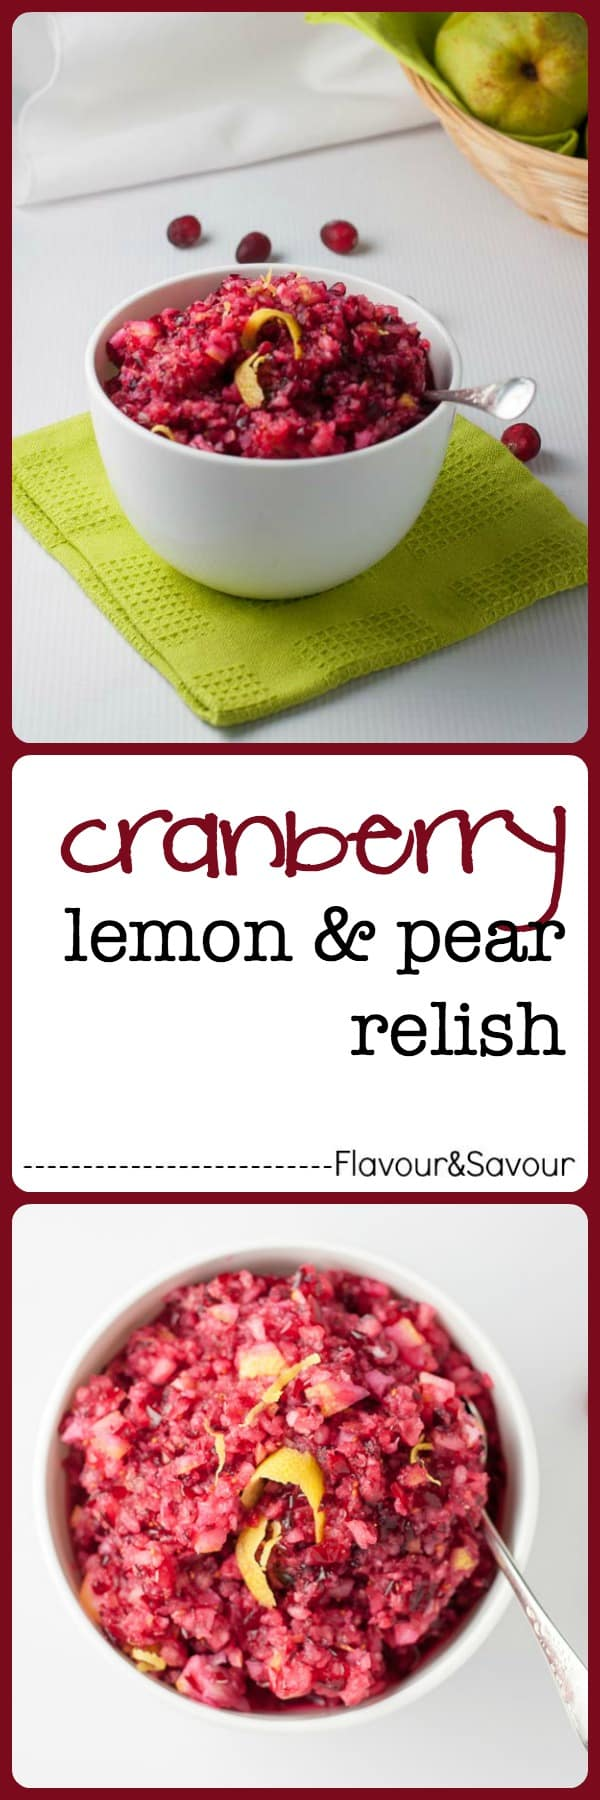 Cranberry Lemon and Pear Relish. A fresh, raw zesty relish that is a great alternative to cranberry sauce. Takes 5 minutes to make!